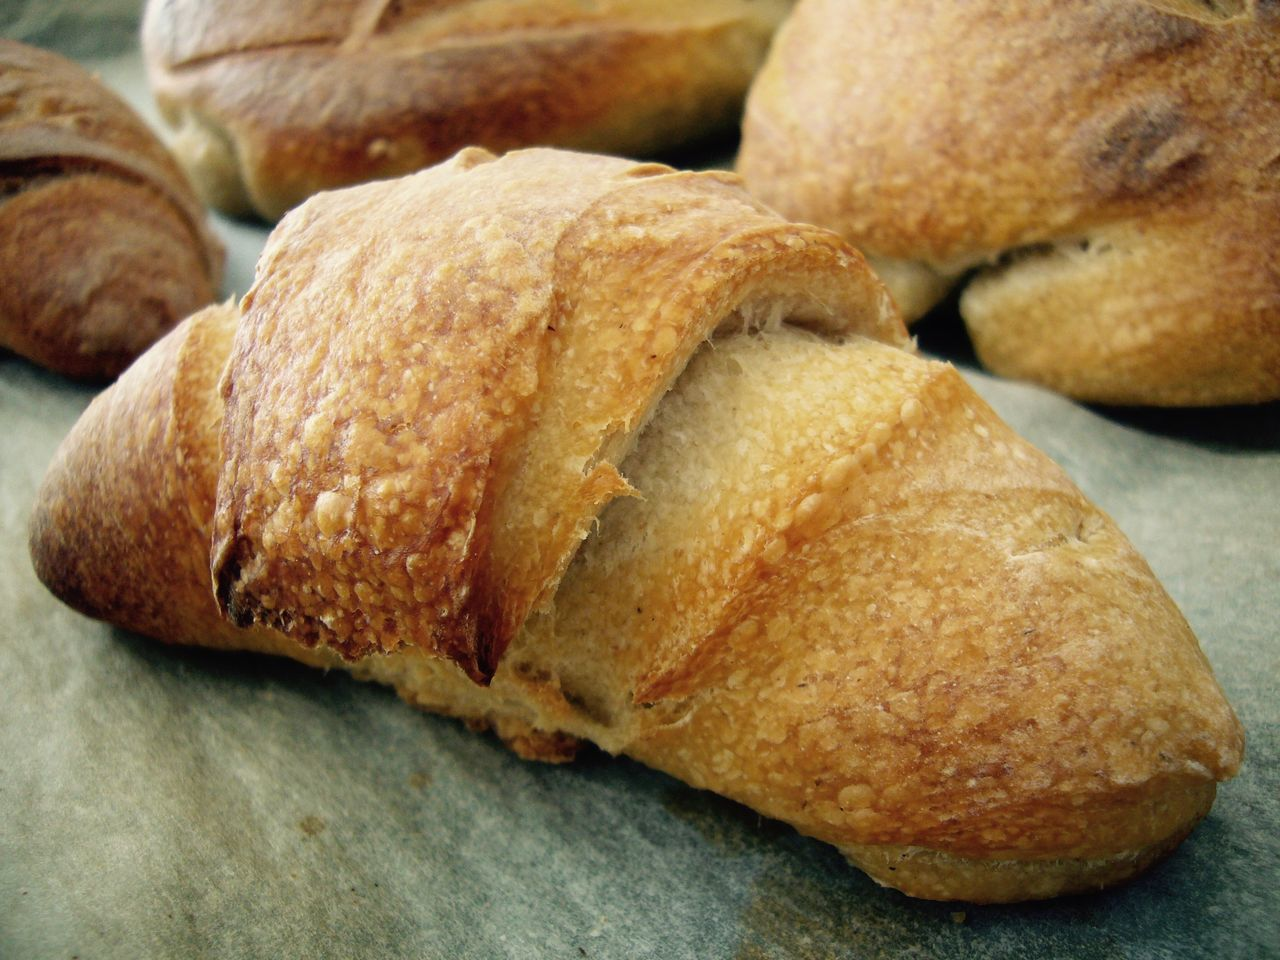 Baked Bread Baking Close-up Delicious Food Food Food And Drink Handmade By Me Healthy Eating Healthy Lifestyle Homemade My Favorite Breakfast Moment Natural Yeast Naturallight Pane Preparation  Ready-to-eat Still Life Temptation Temptation Yeast  Freshly Baked In The Kitchen From Kriszta's Kitchen Panasonic